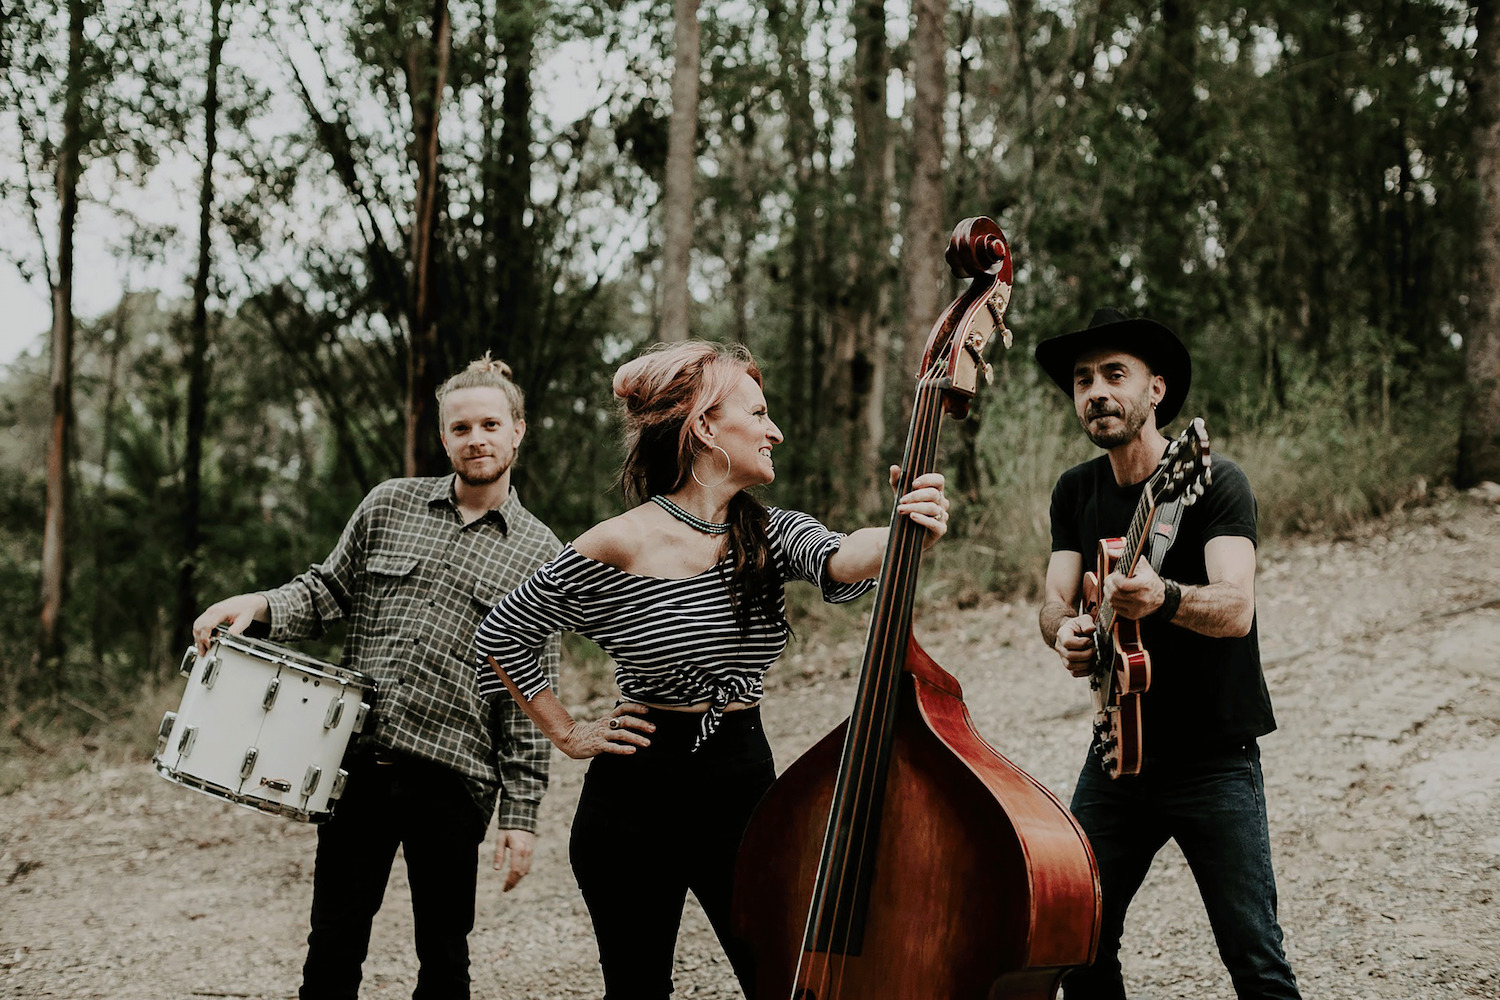 Palomino III - one of the talented acts appearing at this year's Hinterland Craft Beer Festival.